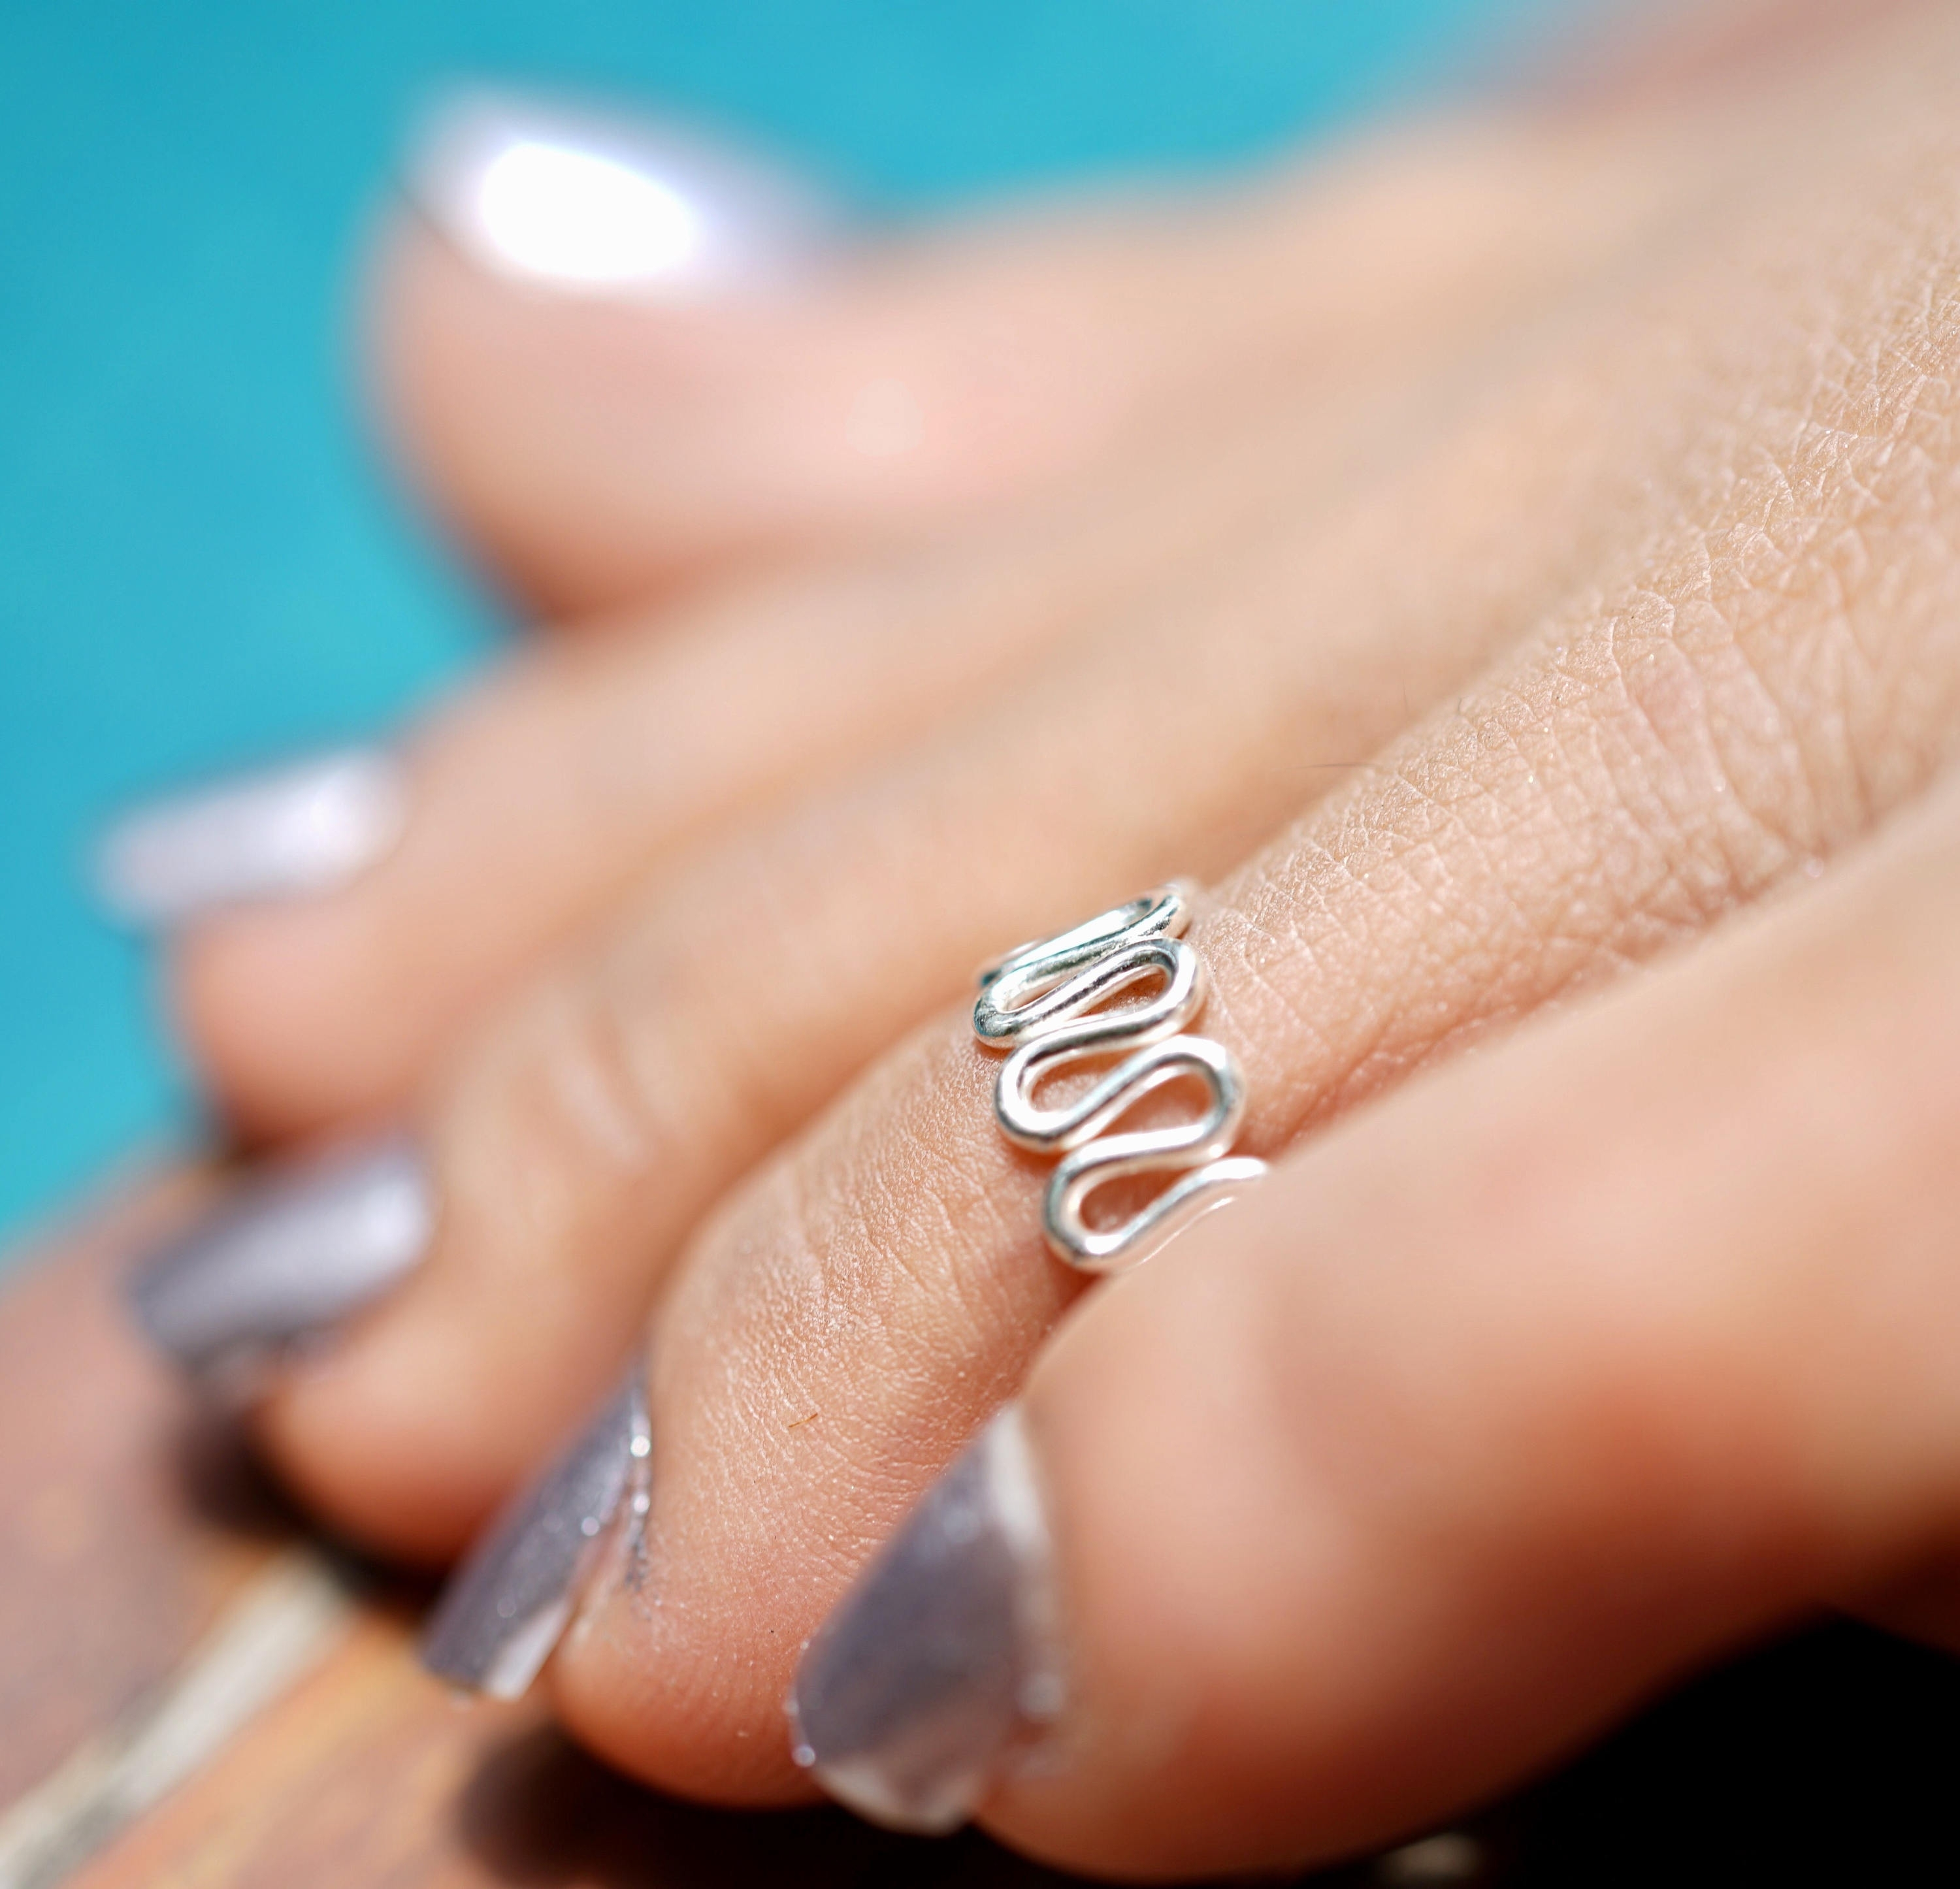 Toe Ring, Silver Toe Ring, Minimalist Silver Jewelry, Hippie Style Intended For Latest Adjustable Toe Rings (Gallery 20 of 25)